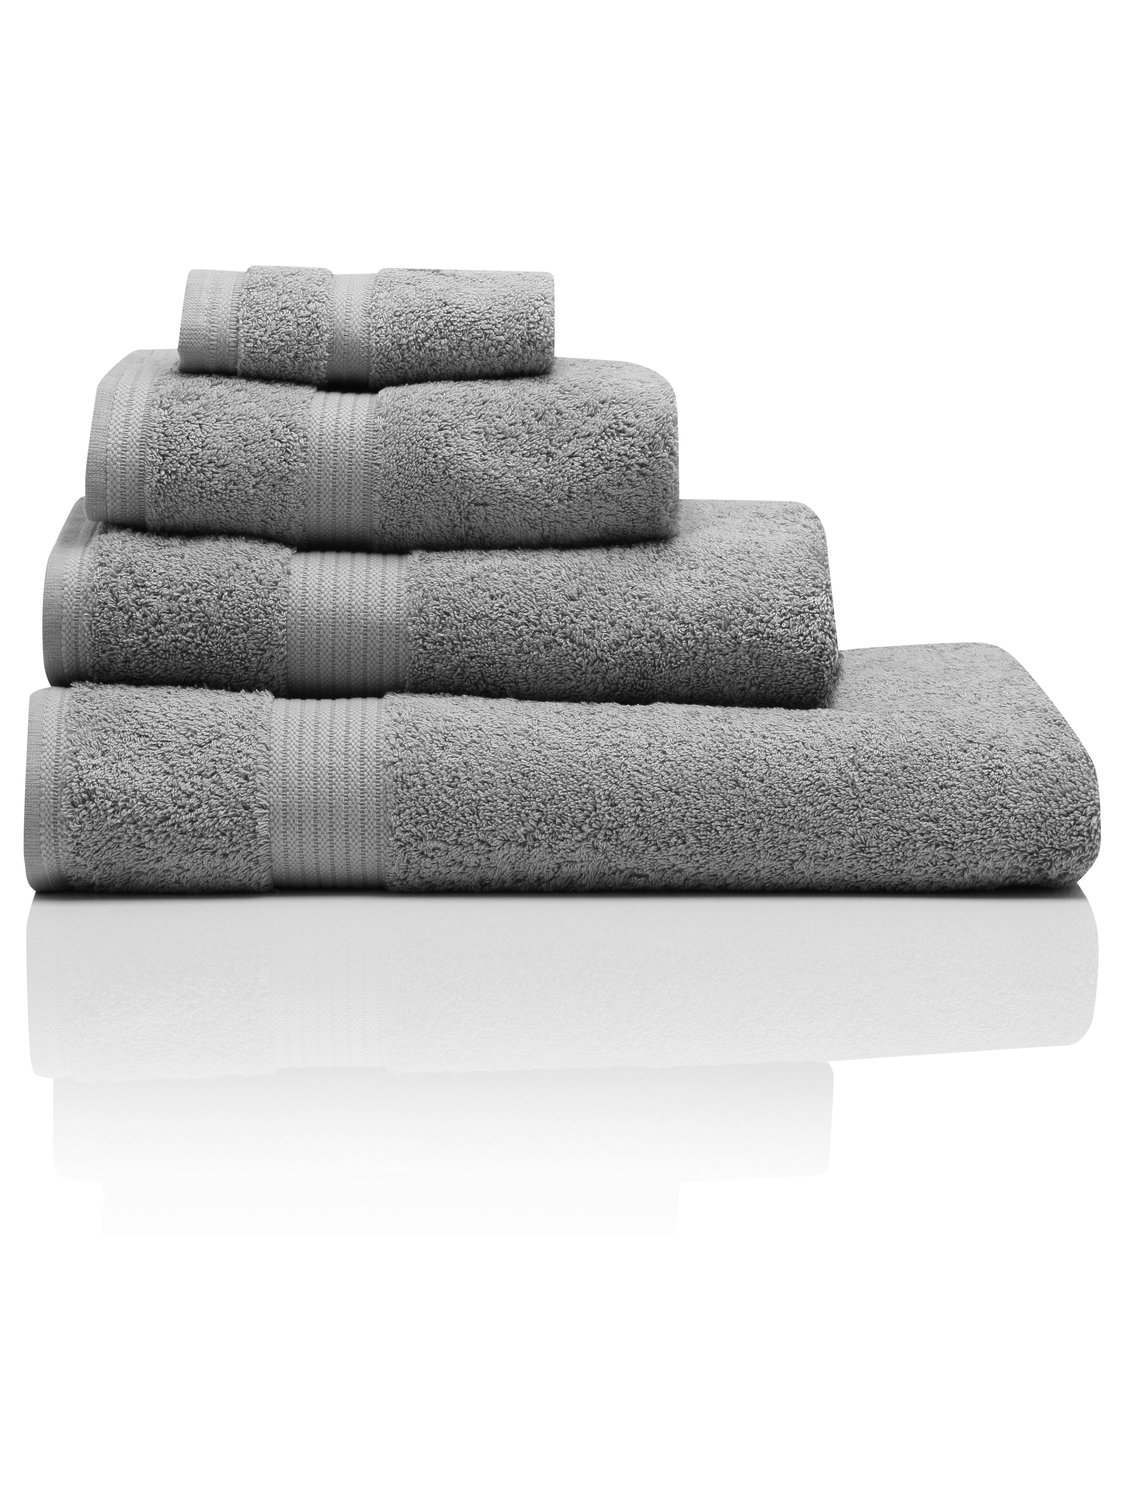 Image of 100% Combed Cotton 580Gsm Luxury Soft And Absorbent Bath Sheet - Dark Grey